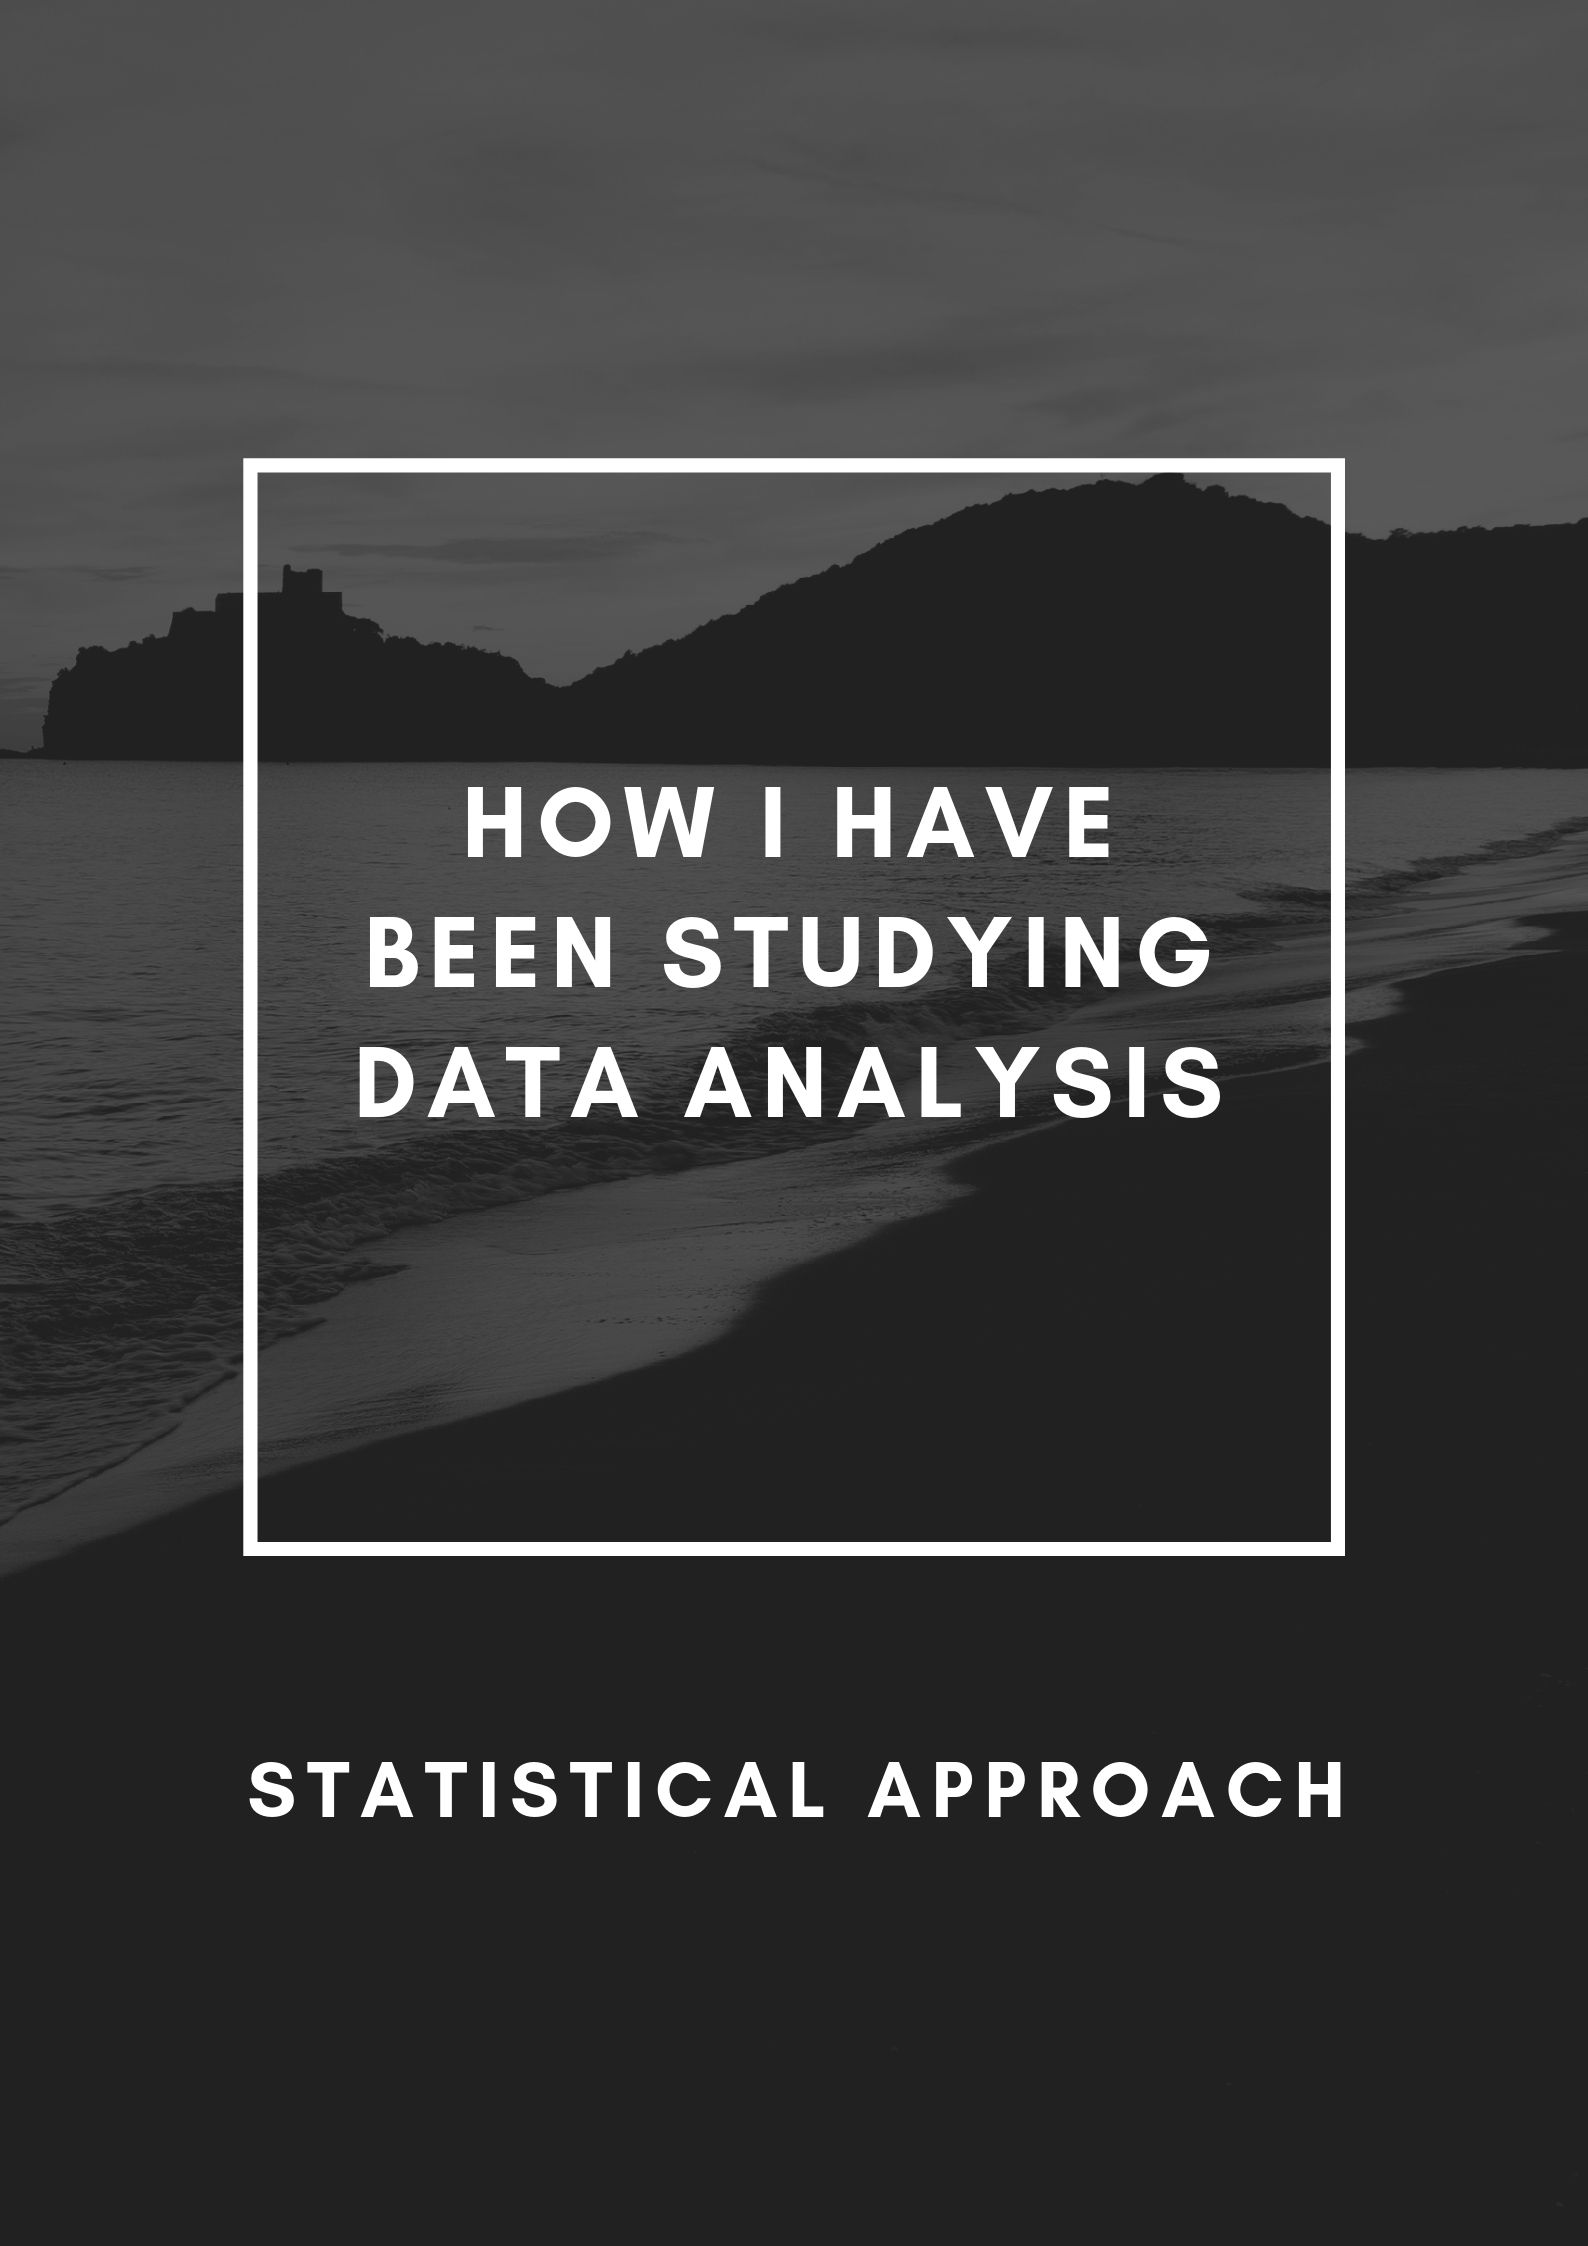 How I Have Been Studying Data Analysis